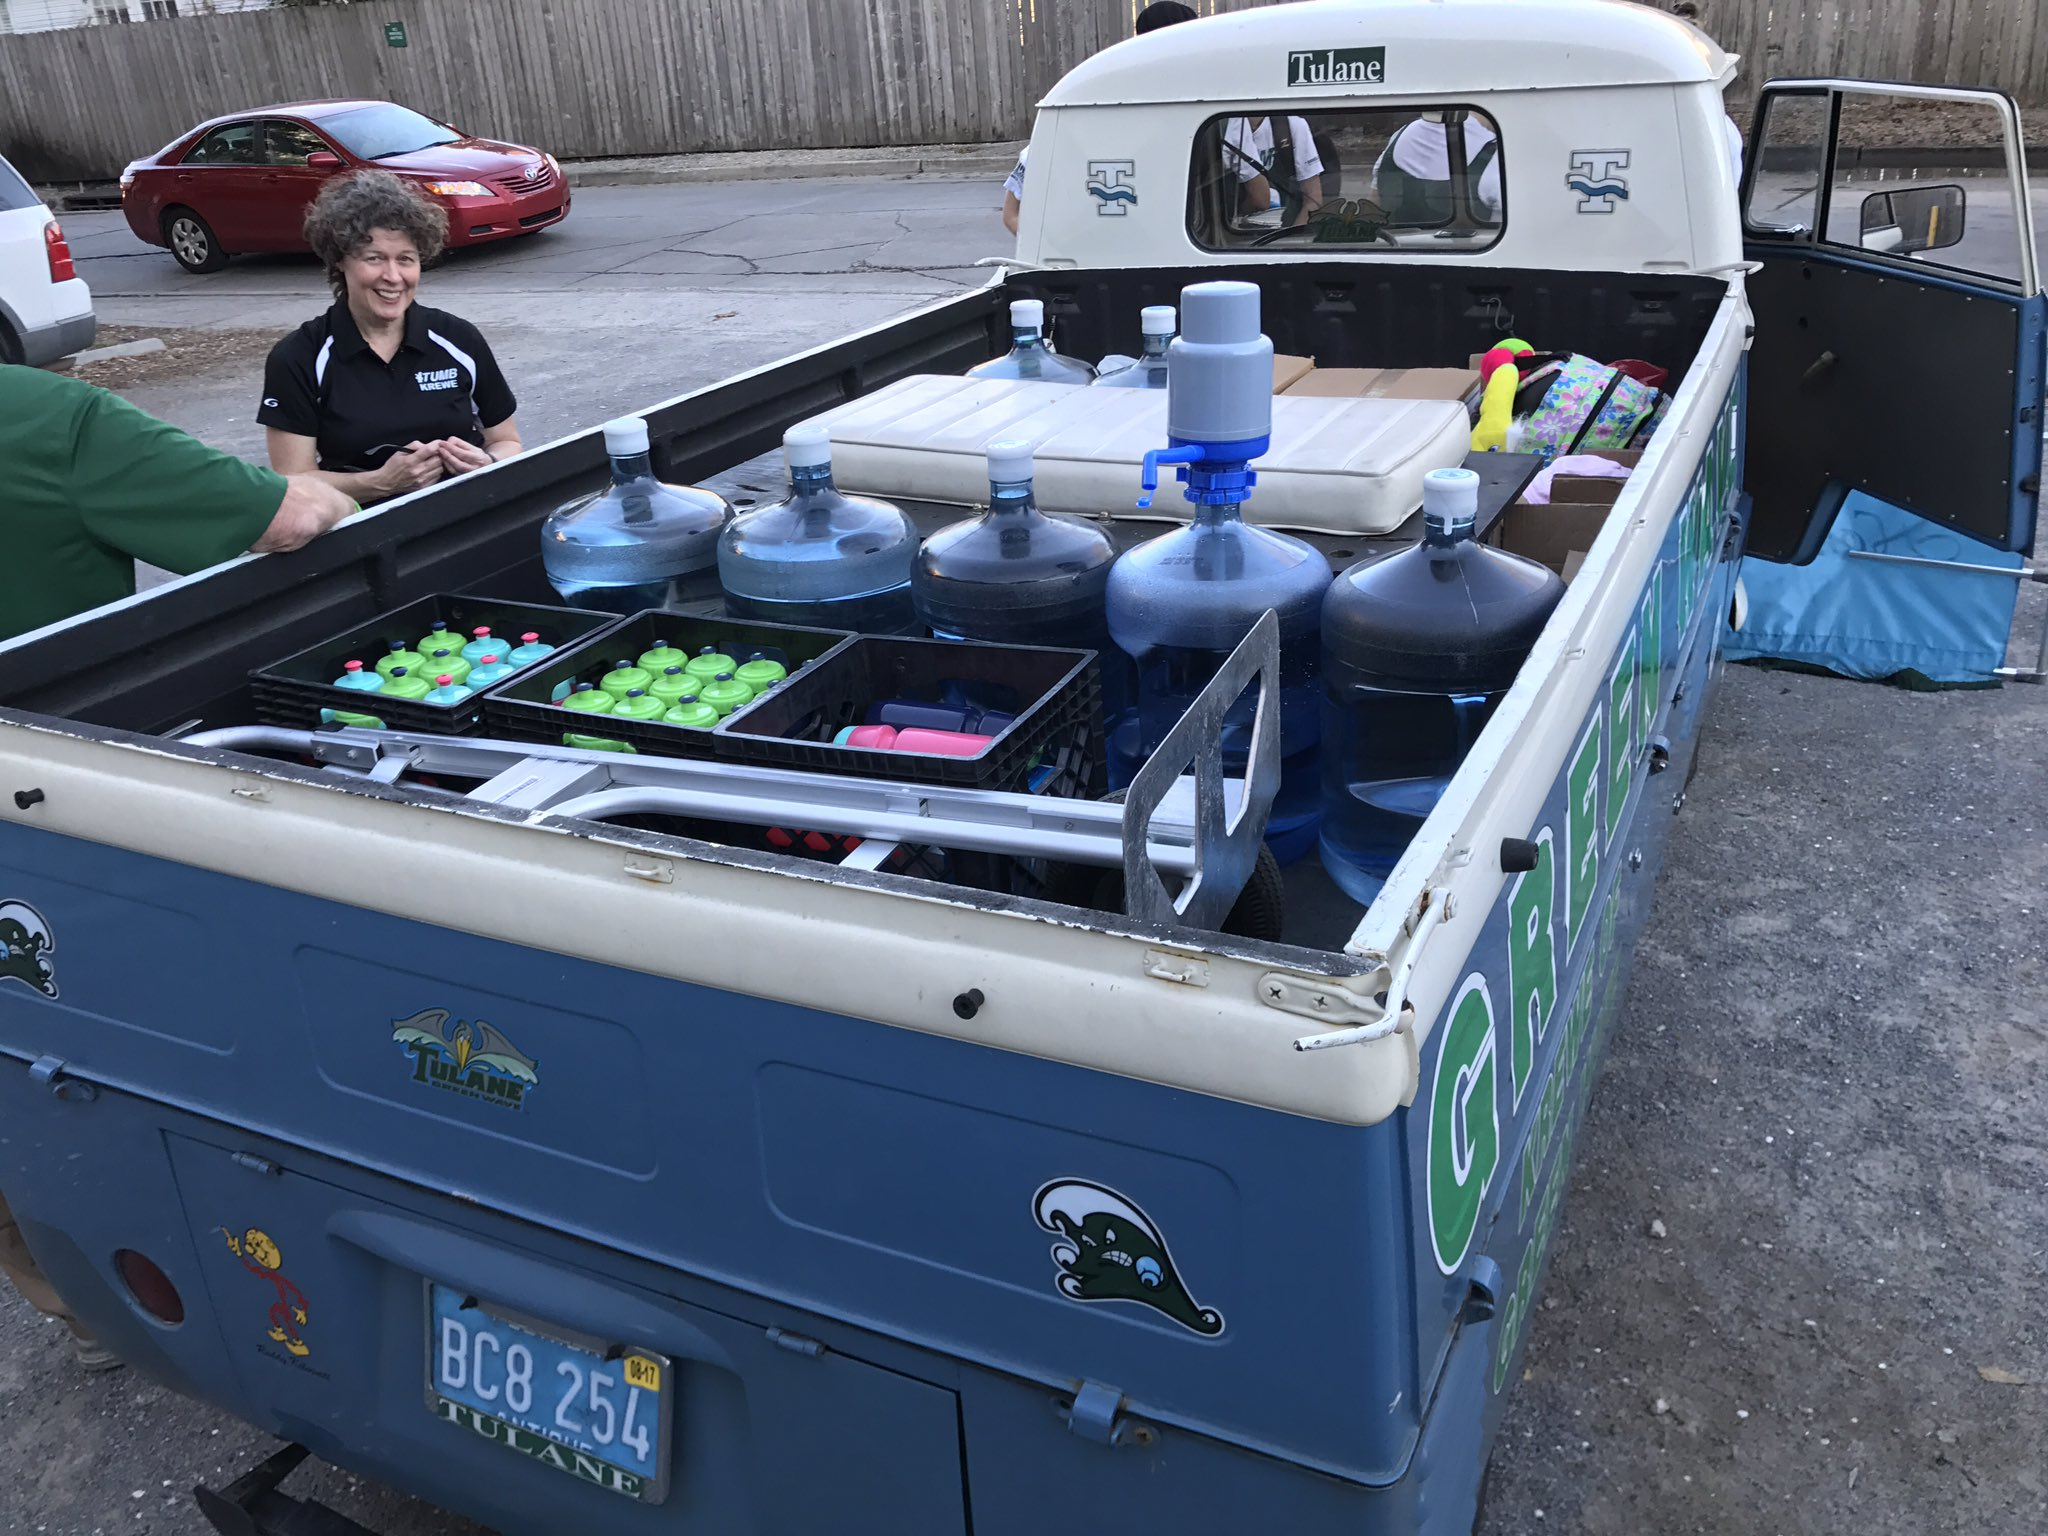 Now we use reusable water bottles, filled in the back of our electric-motor '61 VW Transporter! #TulaneRecycles @RecycleManiacs @GreenTulane https://t.co/rXaJrBSzLY